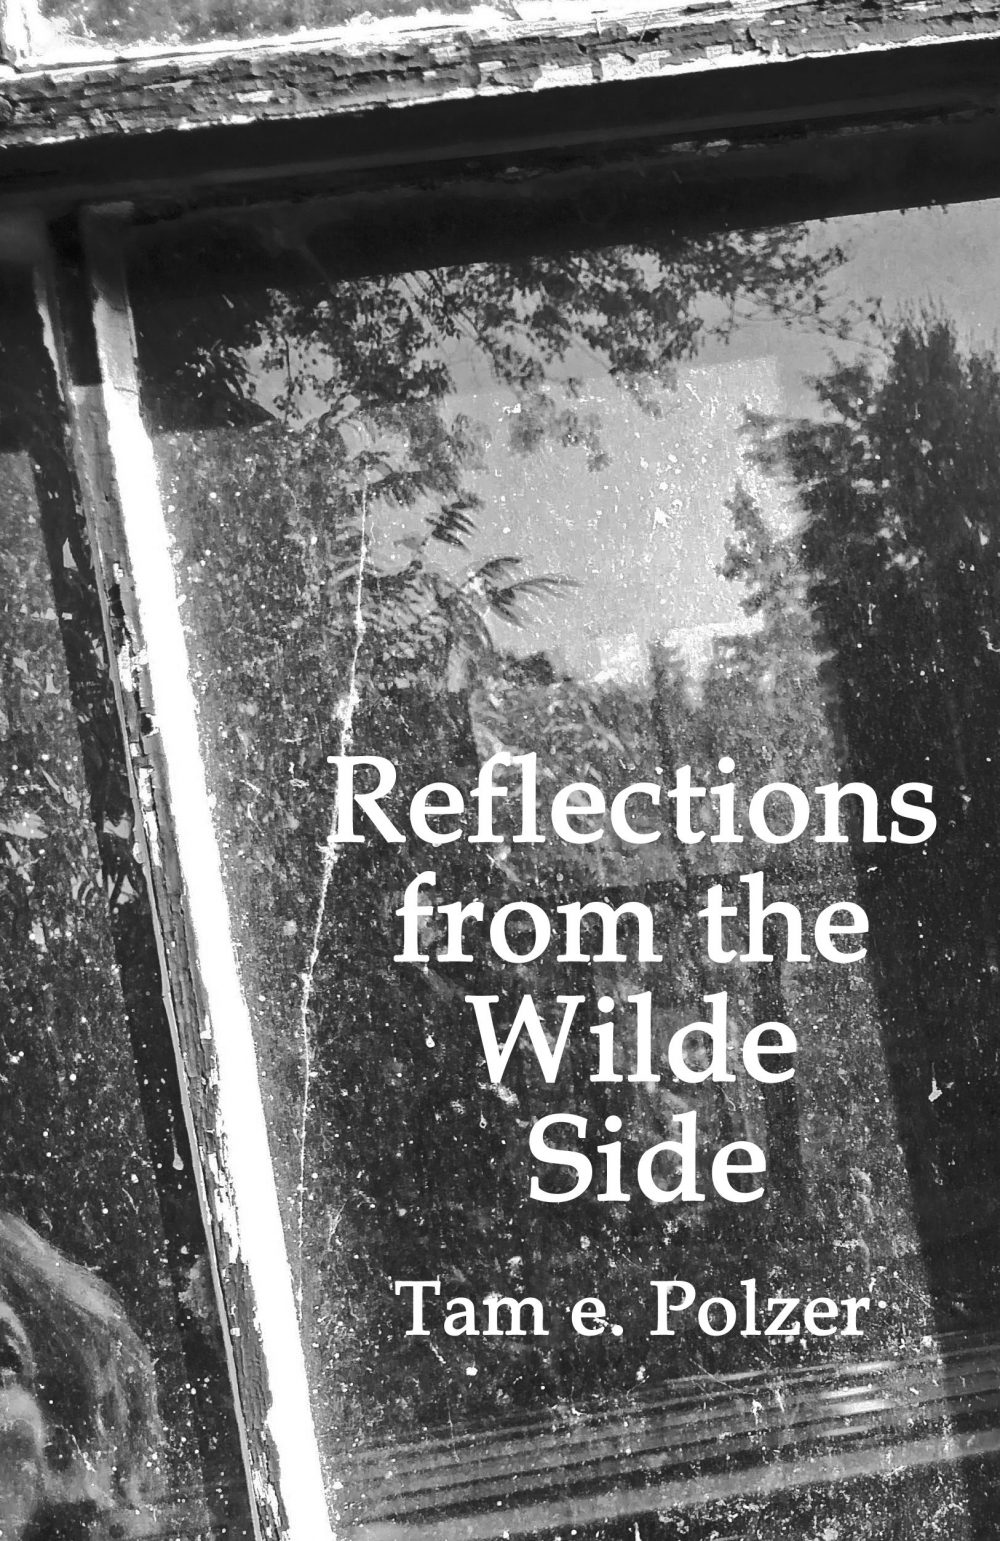 Reflections from the Wilde Side $18.00/5.99 on Amazon